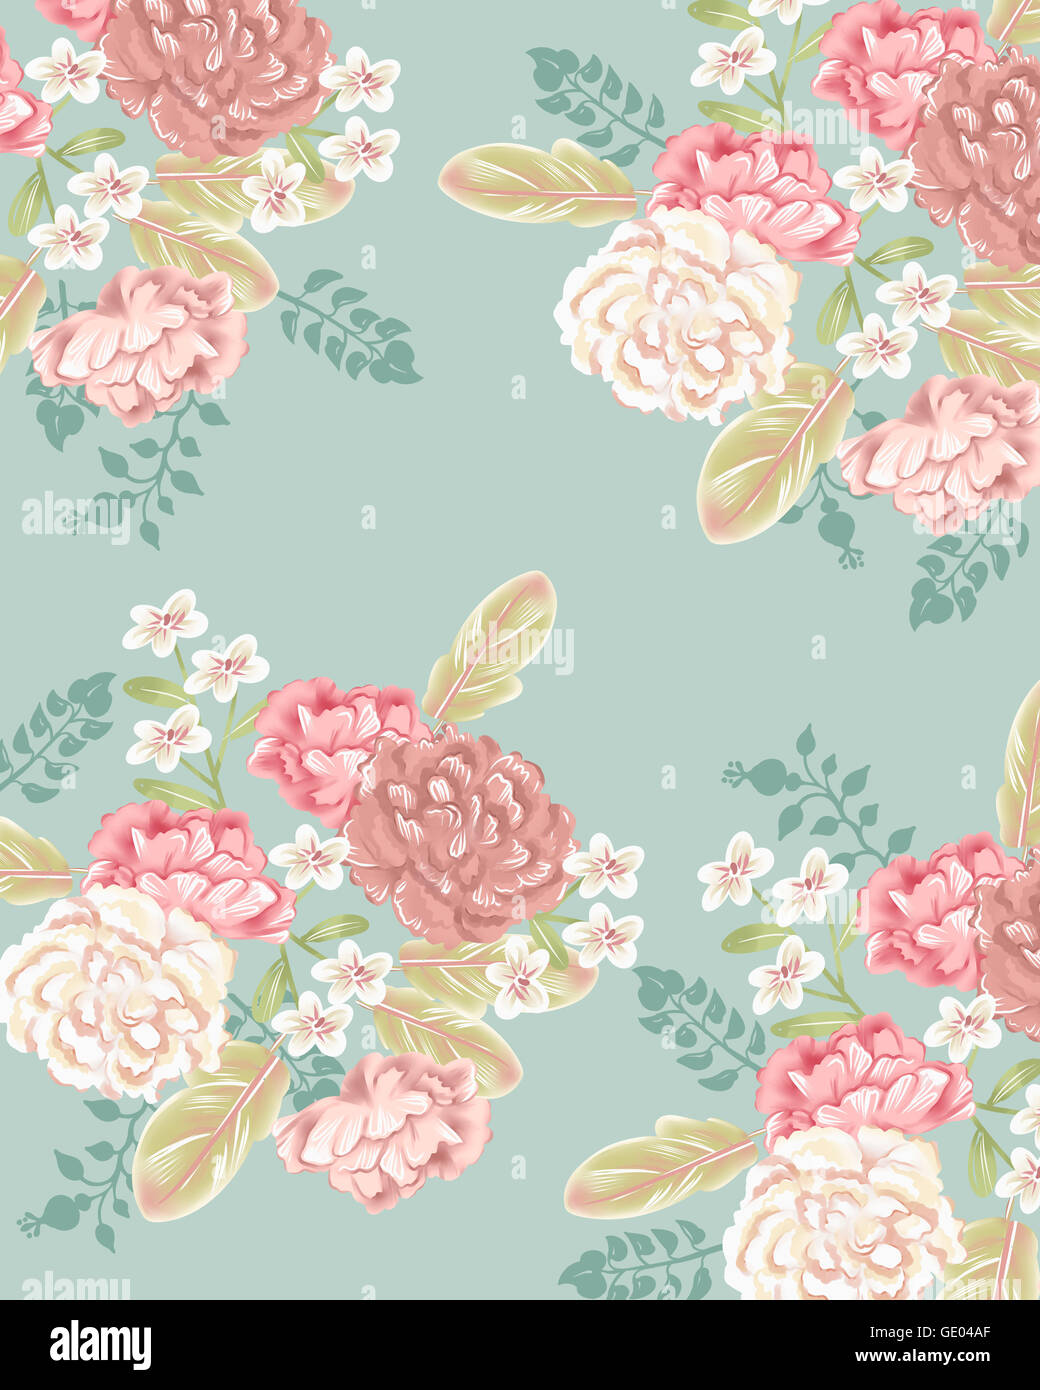 Patterns Of Pink Flowers And Leaves Against Pastel Blue For Diary